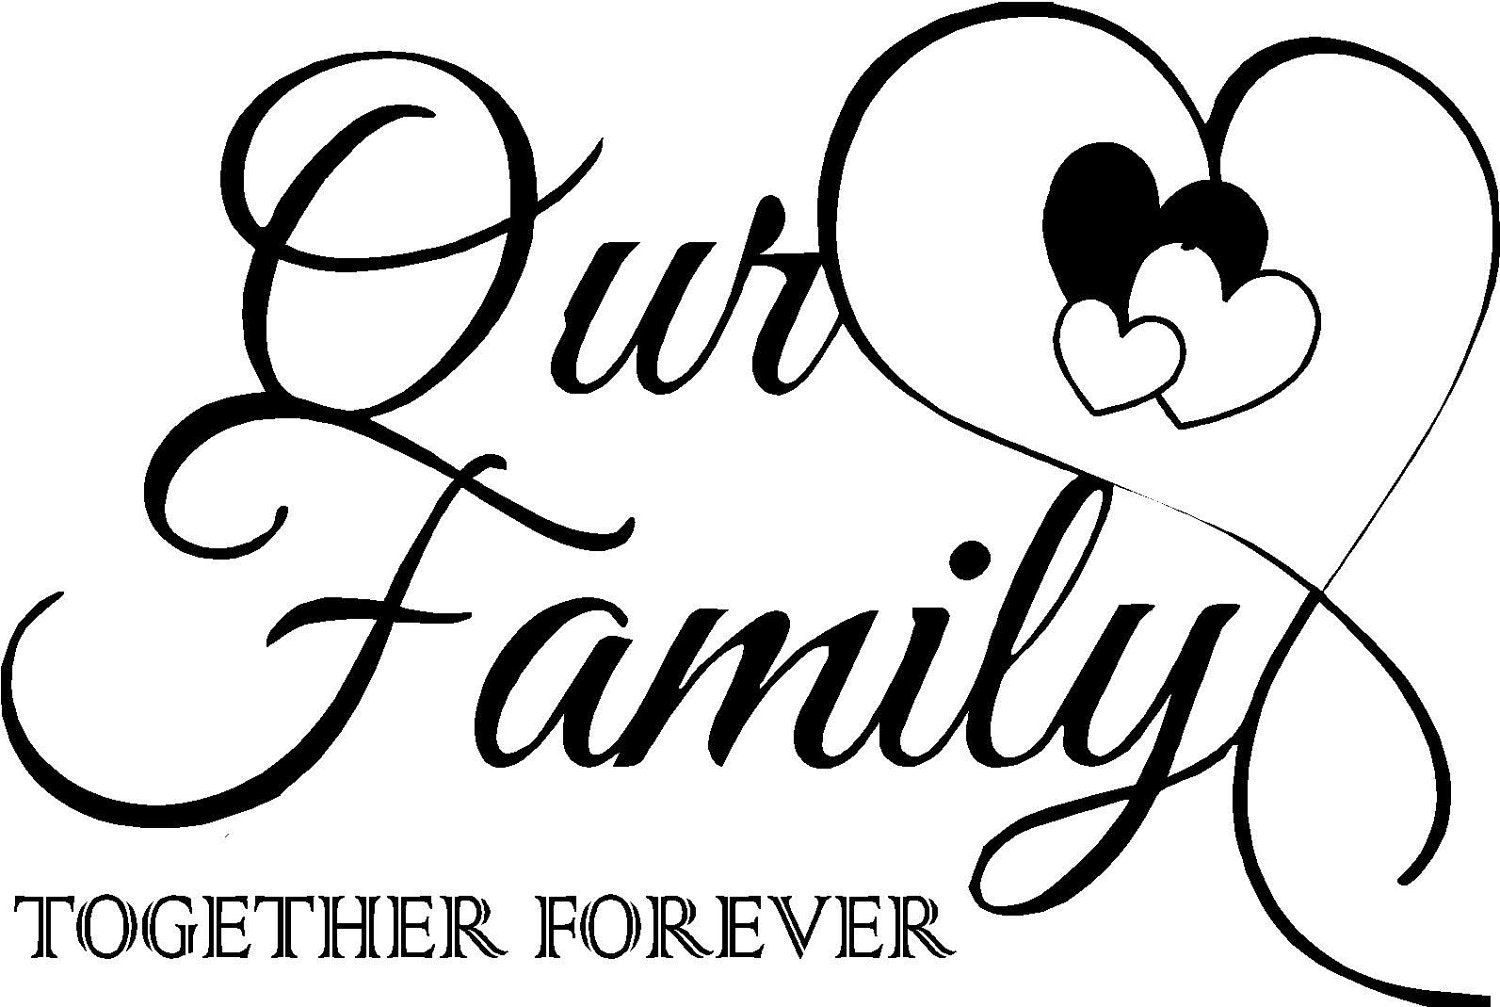 Request a custom order and have something made just for you Family Quote Images